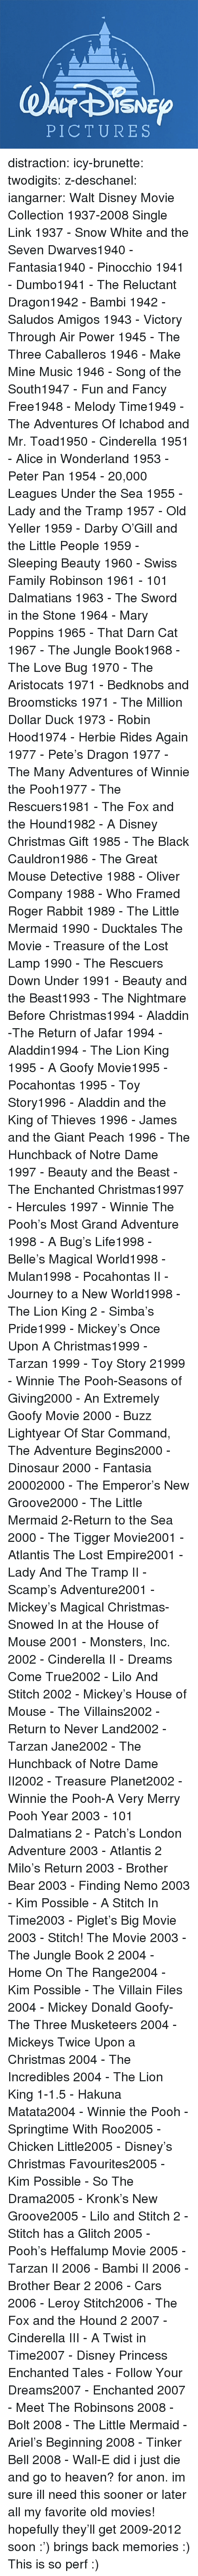 New Groove: PICTURES distraction:   icy-brunette:   twodigits:   z-deschanel:   iangarner:   Walt Disney Movie Collection 1937-2008 Single Link      1937 - Snow White and the Seven Dwarves1940 - Fantasia1940 - Pinocchio 1941 - Dumbo1941 - The Reluctant Dragon1942 - Bambi 1942 - Saludos Amigos 1943 - Victory Through Air Power 1945 - The Three Caballeros 1946 - Make Mine Music 1946 - Song of the South1947 - Fun and Fancy Free1948 - Melody Time1949 - The Adventures Of Ichabod and Mr. Toad1950 - Cinderella 1951 - Alice in Wonderland 1953 - Peter Pan 1954 - 20,000 Leagues Under the Sea 1955 - Lady and the Tramp 1957 - Old Yeller 1959 - Darby O'Gill and the Little People 1959 - Sleeping Beauty 1960 - Swiss Family Robinson 1961 - 101 Dalmatians 1963 - The Sword in the Stone 1964 - Mary Poppins 1965 - That Darn Cat 1967 - The Jungle Book1968 - The Love Bug 1970 - The Aristocats 1971 - Bedknobs and Broomsticks 1971 - The Million Dollar Duck 1973 - Robin Hood1974 - Herbie Rides Again 1977 - Pete's Dragon 1977 - The Many Adventures of Winnie the Pooh1977 - The Rescuers1981 - The Fox and the Hound1982 - A Disney Christmas Gift 1985 - The Black Cauldron1986 - The Great Mouse Detective 1988 - Oliver  Company 1988 - Who Framed Roger Rabbit 1989 - The Little Mermaid 1990 - Ducktales The Movie - Treasure of the Lost Lamp 1990 - The Rescuers Down Under 1991 - Beauty and the Beast1993 - The Nightmare Before Christmas1994 - Aladdin -The Return of Jafar 1994 - Aladdin1994 - The Lion King 1995 - A Goofy Movie1995 - Pocahontas 1995 - Toy Story1996 - Aladdin and the King of Thieves 1996 - James and the Giant Peach 1996 - The Hunchback of Notre Dame 1997 - Beauty and the Beast - The Enchanted Christmas1997 - Hercules 1997 - Winnie The Pooh's Most Grand Adventure 1998 - A Bug's Life1998 - Belle's Magical World1998 - Mulan1998 - Pocahontas II - Journey to a New World1998 - The Lion King 2 - Simba's Pride1999 - Mickey's Once Upon A Christmas1999 - Tarzan 1999 - Toy Story 21999 - Winnie The Pooh-Seasons of Giving2000 - An Extremely Goofy Movie 2000 - Buzz Lightyear Of Star Command, The Adventure Begins2000 - Dinosaur 2000 - Fantasia 20002000 - The Emperor's New Groove2000 - The Little Mermaid 2-Return to the Sea 2000 - The Tigger Movie2001 - Atlantis The Lost Empire2001 - Lady And The Tramp II - Scamp's Adventure2001 - Mickey's Magical Christmas-Snowed In at the House of Mouse 2001 - Monsters, Inc. 2002 - Cinderella II - Dreams Come True2002 - Lilo And Stitch 2002 - Mickey's House of Mouse - The Villains2002 - Return to Never Land2002 - Tarzan  Jane2002 - The Hunchback of Notre Dame II2002 - Treasure Planet2002 - Winnie the Pooh-A Very Merry Pooh Year 2003 - 101 Dalmatians 2 - Patch's London Adventure 2003 - Atlantis 2 Milo's Return 2003 - Brother Bear 2003 - Finding Nemo 2003 - Kim Possible - A Stitch In Time2003 - Piglet's Big Movie 2003 - Stitch! The Movie 2003 - The Jungle Book 2 2004 - Home On The Range2004 - Kim Possible - The Villain Files 2004 - Mickey Donald Goofy-The Three Musketeers 2004 - Mickeys Twice Upon a Christmas 2004 - The Incredibles 2004 - The Lion King 1-1.5 - Hakuna Matata2004 - Winnie the Pooh - Springtime With Roo2005 - Chicken Little2005 - Disney's Christmas Favourites2005 - Kim Possible - So The Drama2005 - Kronk's New Groove2005 - Lilo and Stitch 2 - Stitch has a Glitch 2005 - Pooh's Heffalump Movie 2005 - Tarzan II 2006 - Bambi II 2006 - Brother Bear 2 2006 - Cars 2006 - Leroy  Stitch2006 - The Fox and the Hound 2 2007 - Cinderella III - A Twist in Time2007 - Disney Princess Enchanted Tales - Follow Your Dreams2007 - Enchanted 2007 - Meet The Robinsons 2008 - Bolt 2008 - The Little Mermaid - Ariel's Beginning 2008 - Tinker Bell 2008 - Wall-E      did i just die and go to heaven?   for anon.    im sure ill need this sooner or later    all my favorite old movies! hopefully they'll get 2009-2012 soon :')   brings back memories :)   This is so perf :)